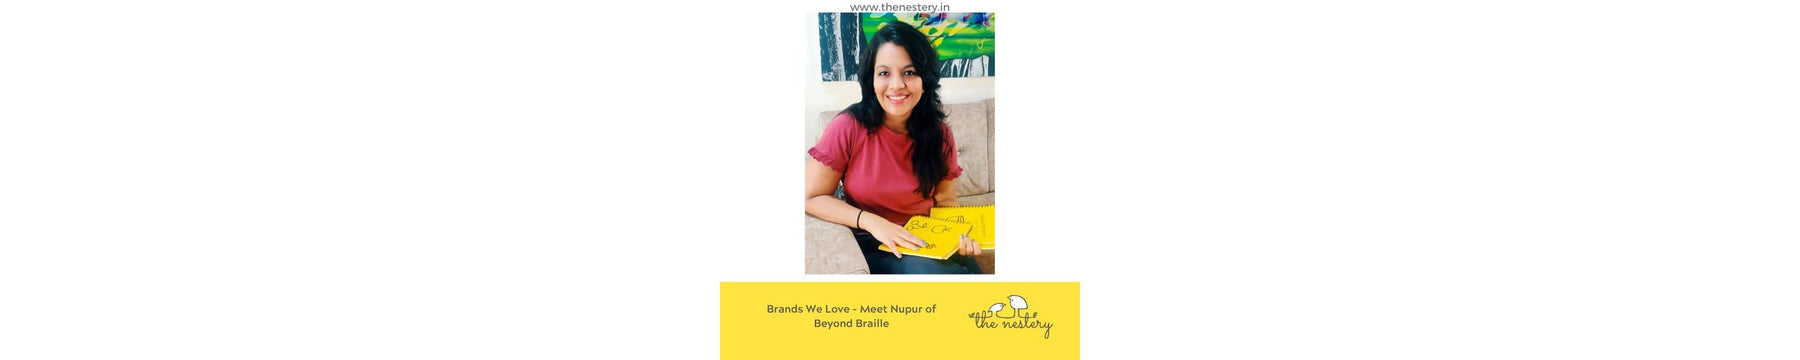 Brands We Love - Meet Nupur of Beyond Braille